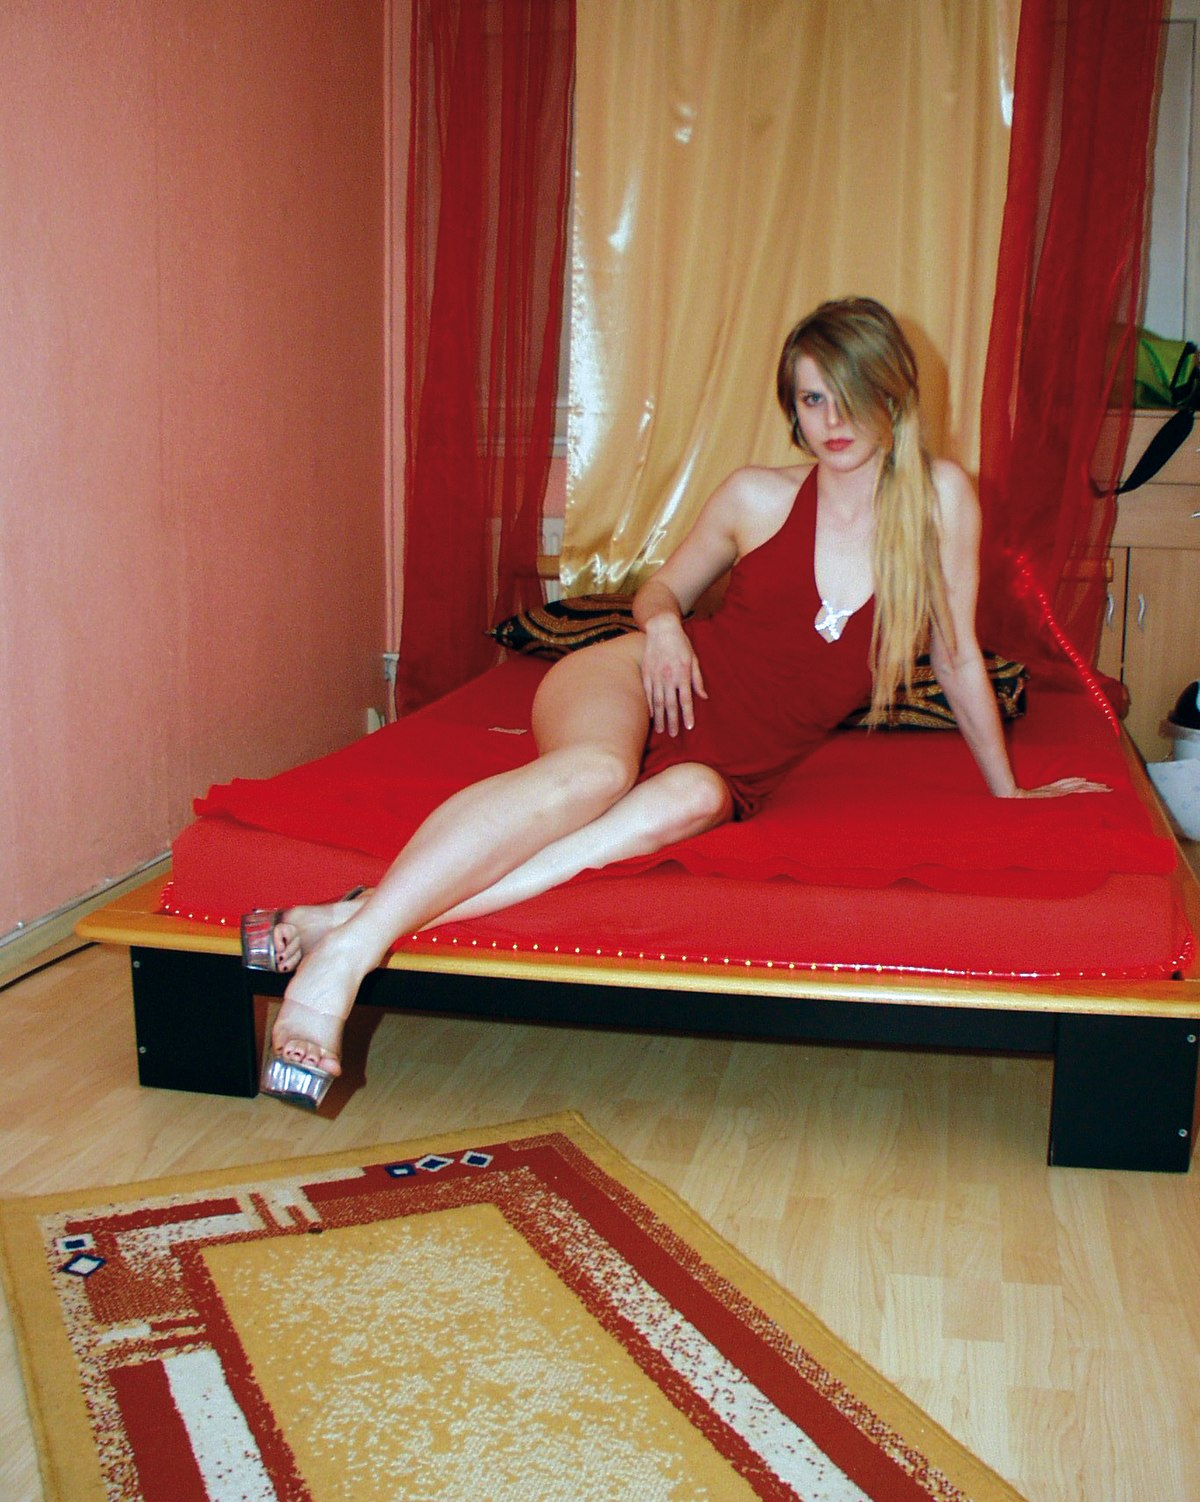 For dortmund contacts sex erotic meissen difficult